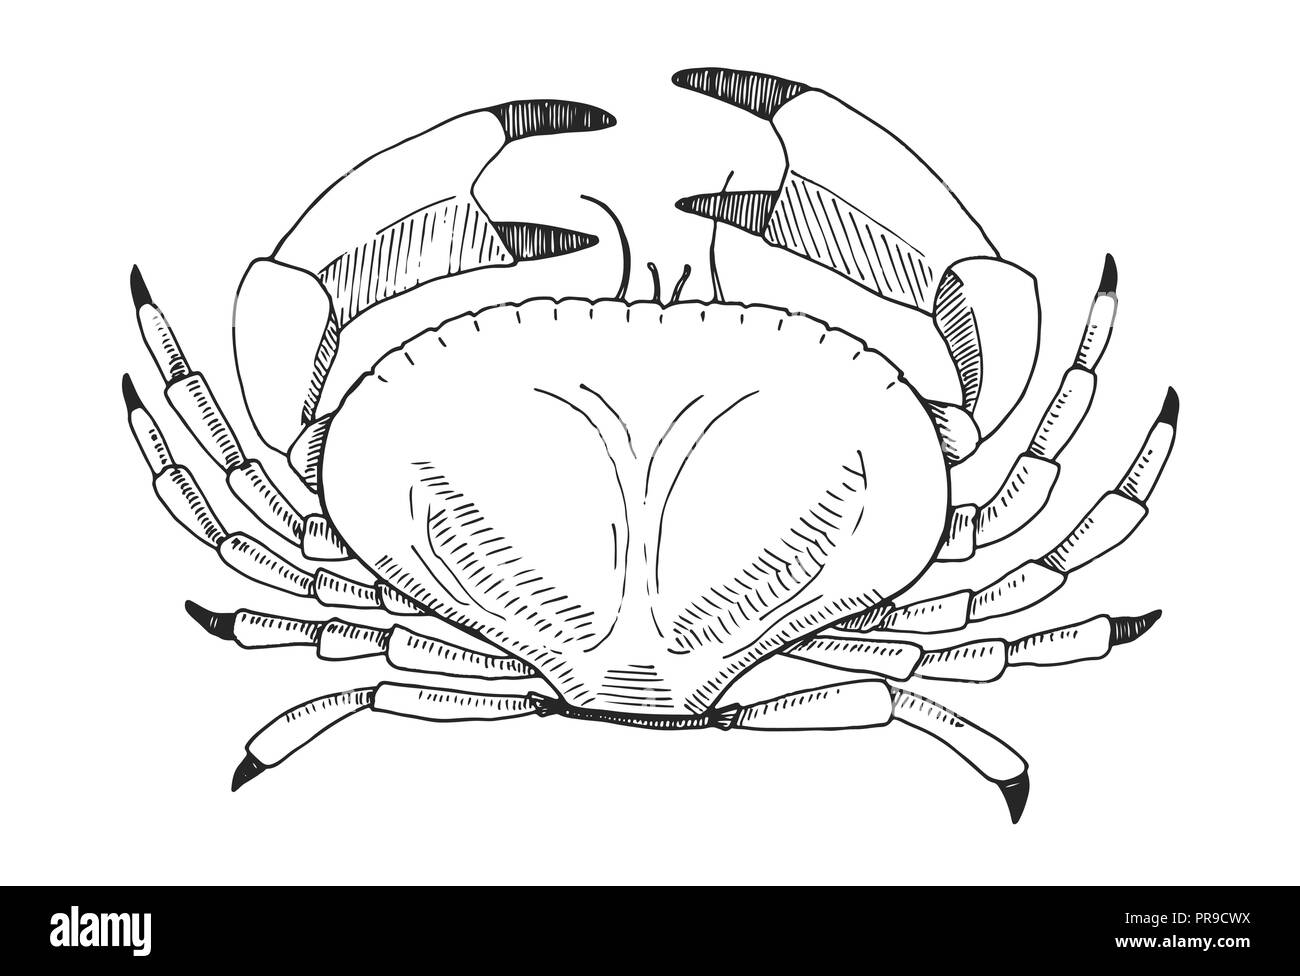 Hand drawn crab. Vector illustration in sketch style - Stock Vector